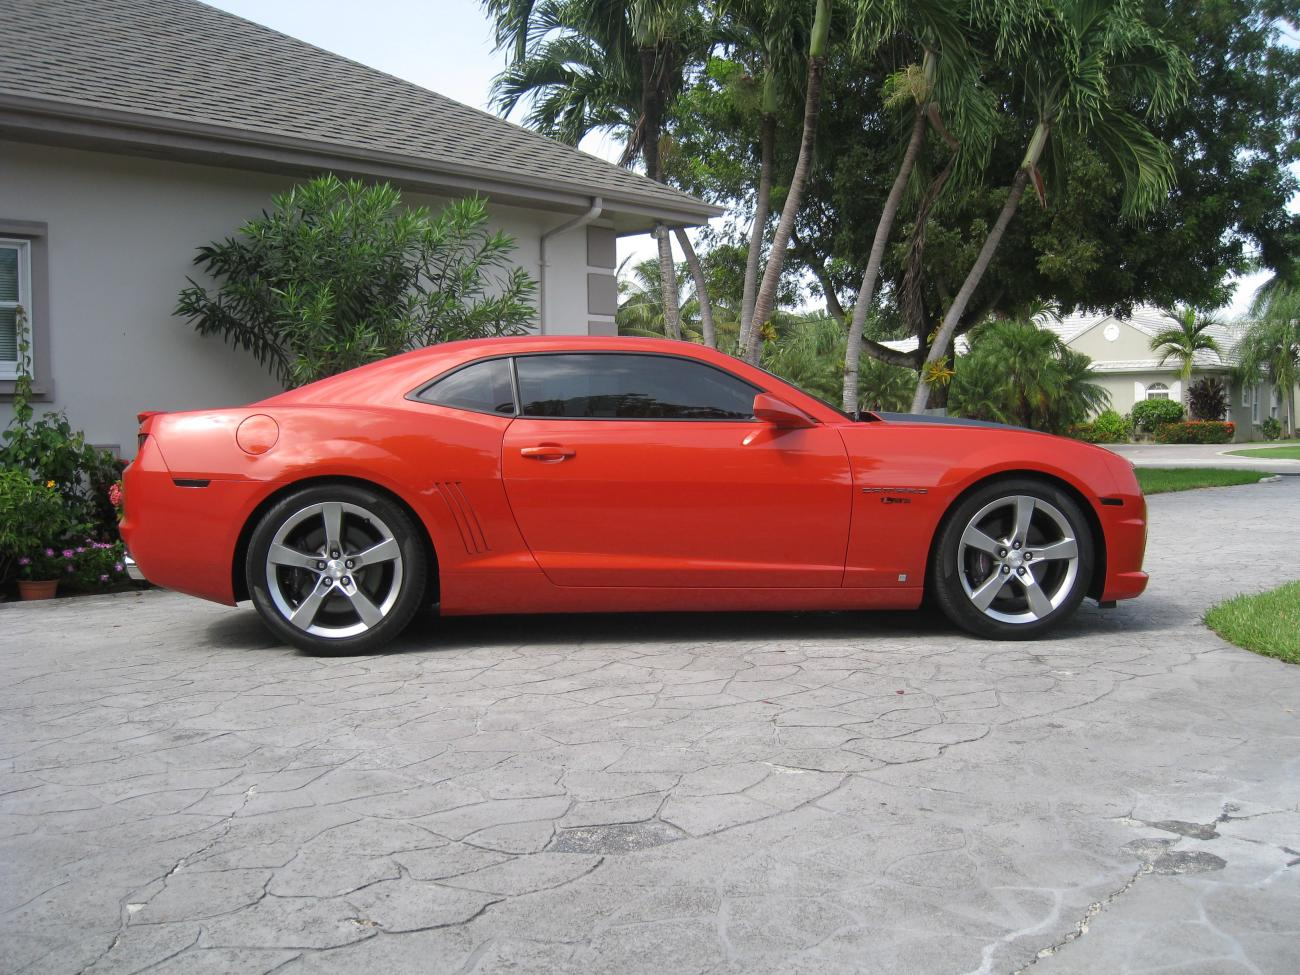 Categories in addition 2001 PONTIAC FIREBIRD TRANS AM WS 6 CUSTOM 2 DOOR COUPE 174634 moreover Car Gallery Automobiles Florida further Johnny Lightning Muscle Cars Usa 2017 Release 1 Version C together with Chevrolet Caprice Is Re Born In The Us As A Police Car Only. on 2000 chevy camaro custom